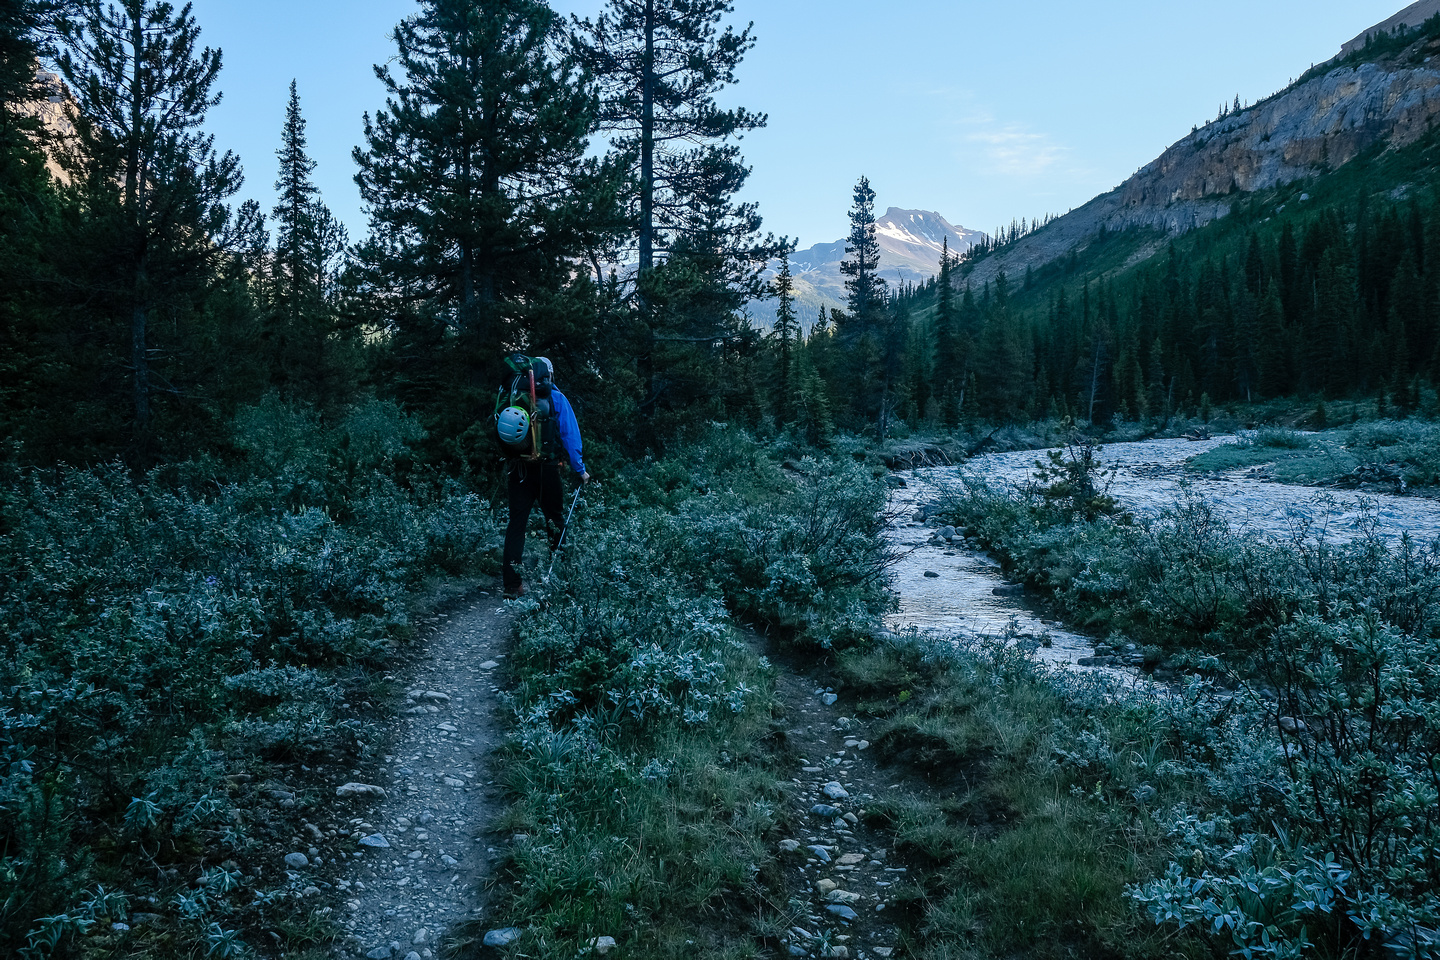 Hiking up Mosquito Creek with frost on the ground!